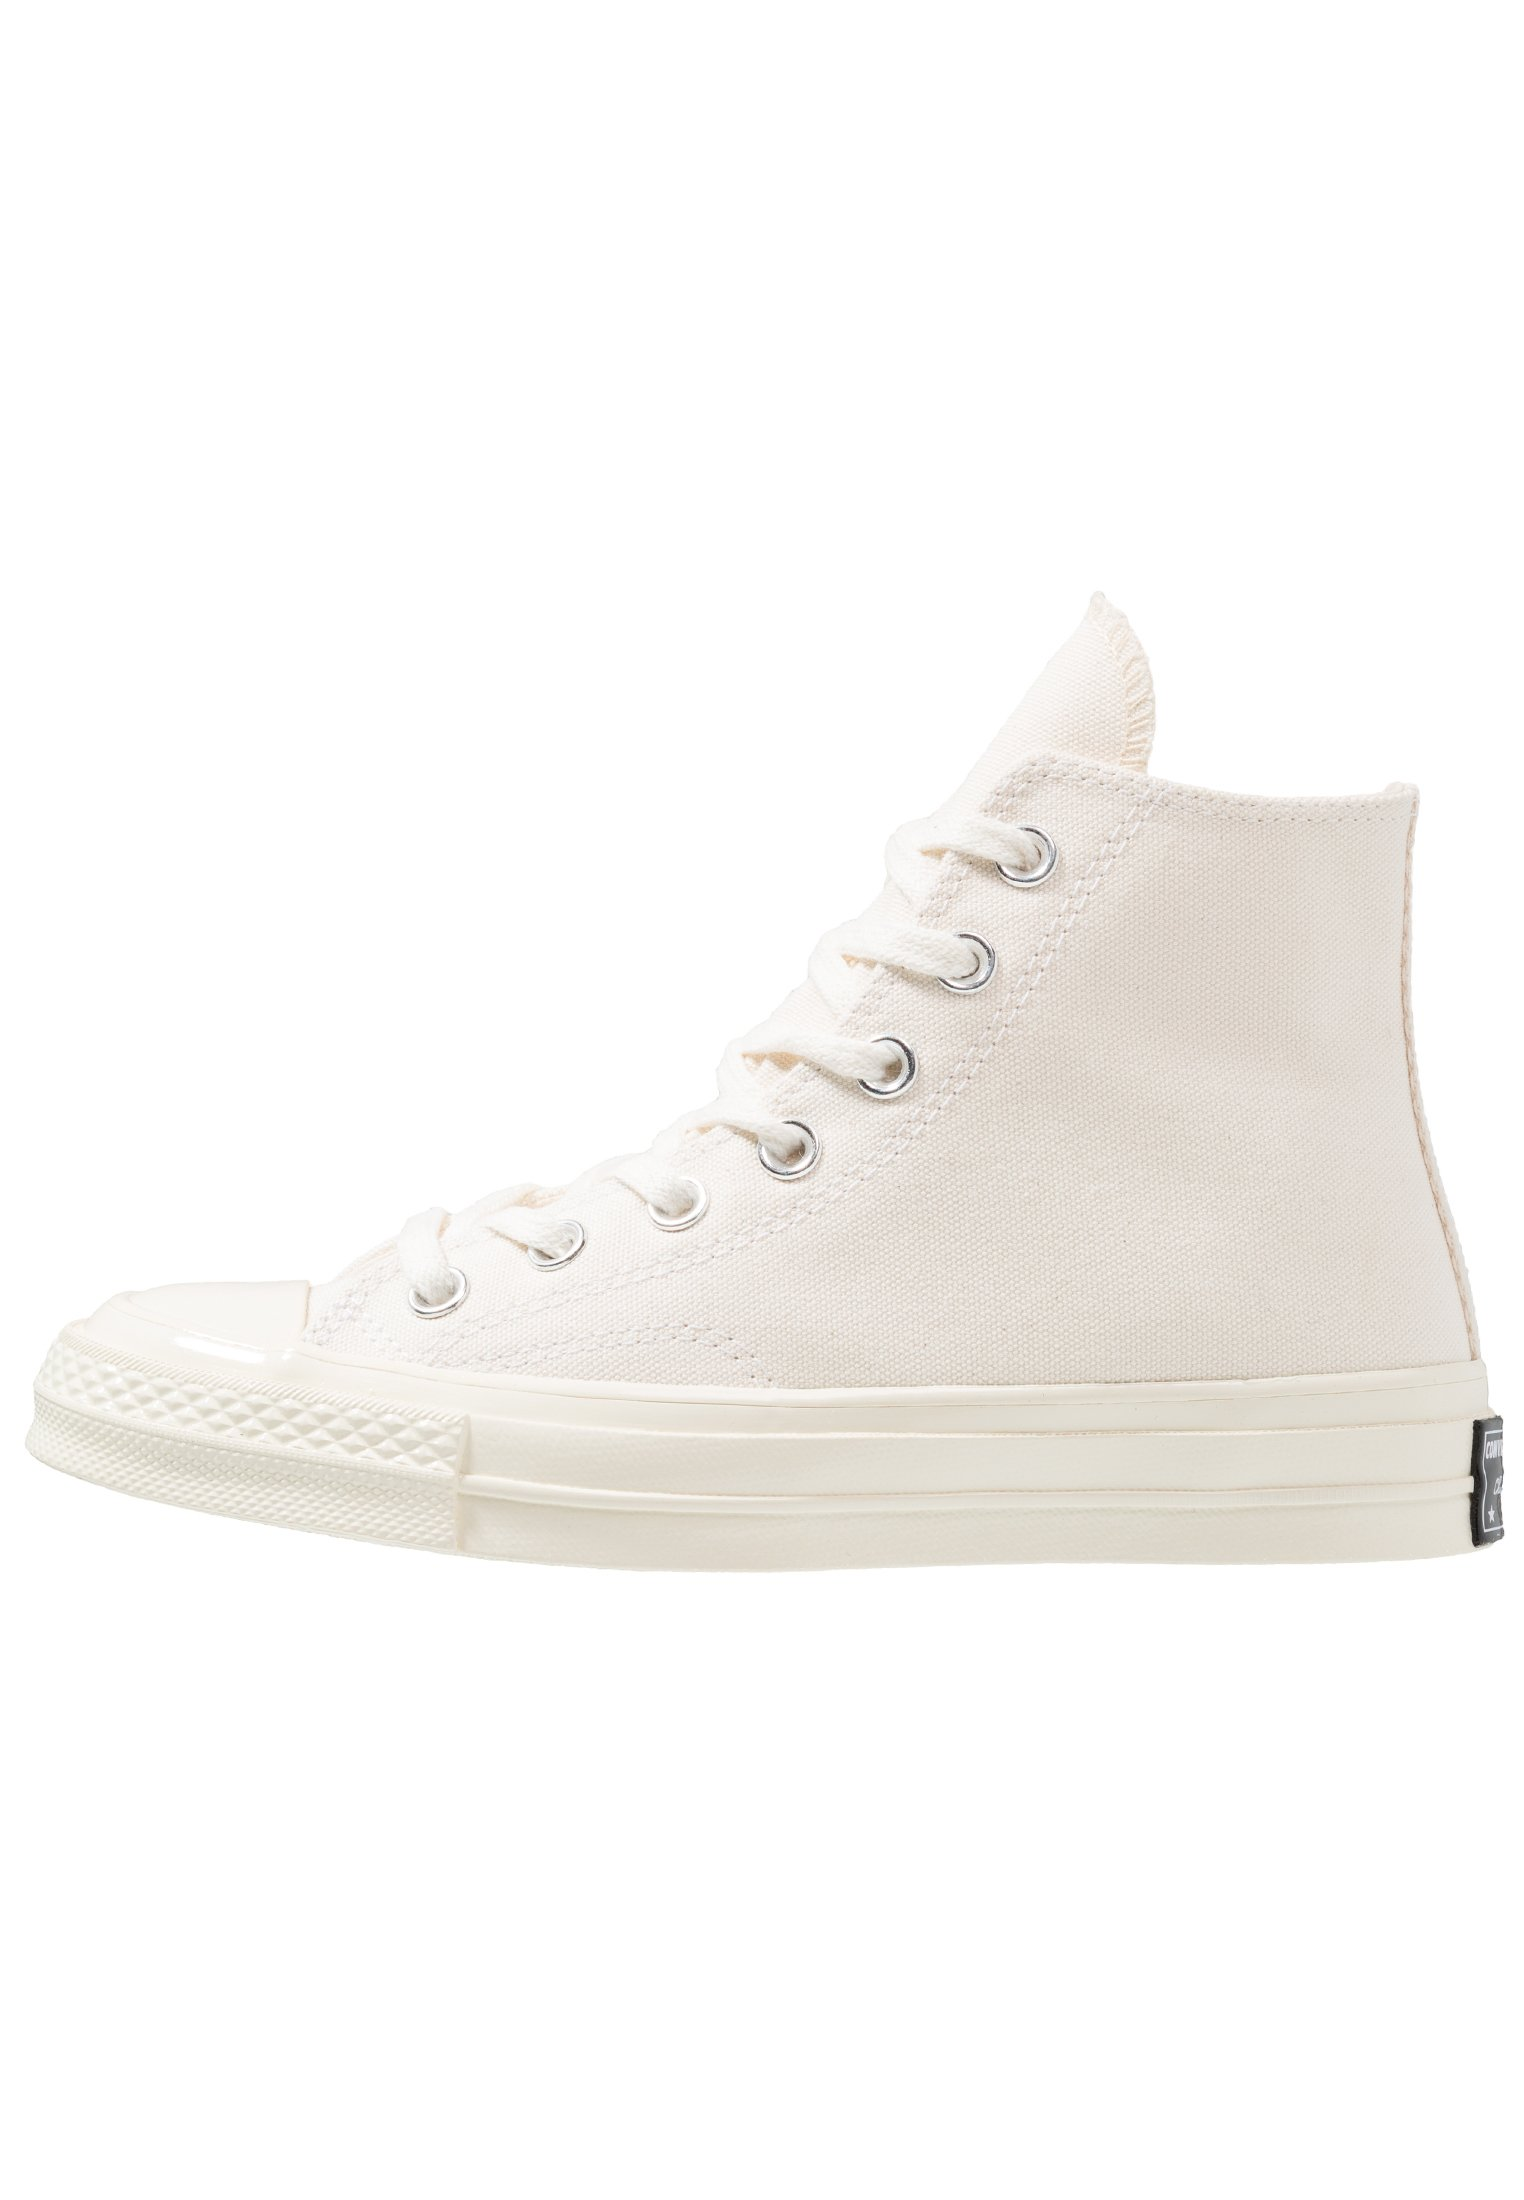 converse homme chuck taylor all star hi charcoal